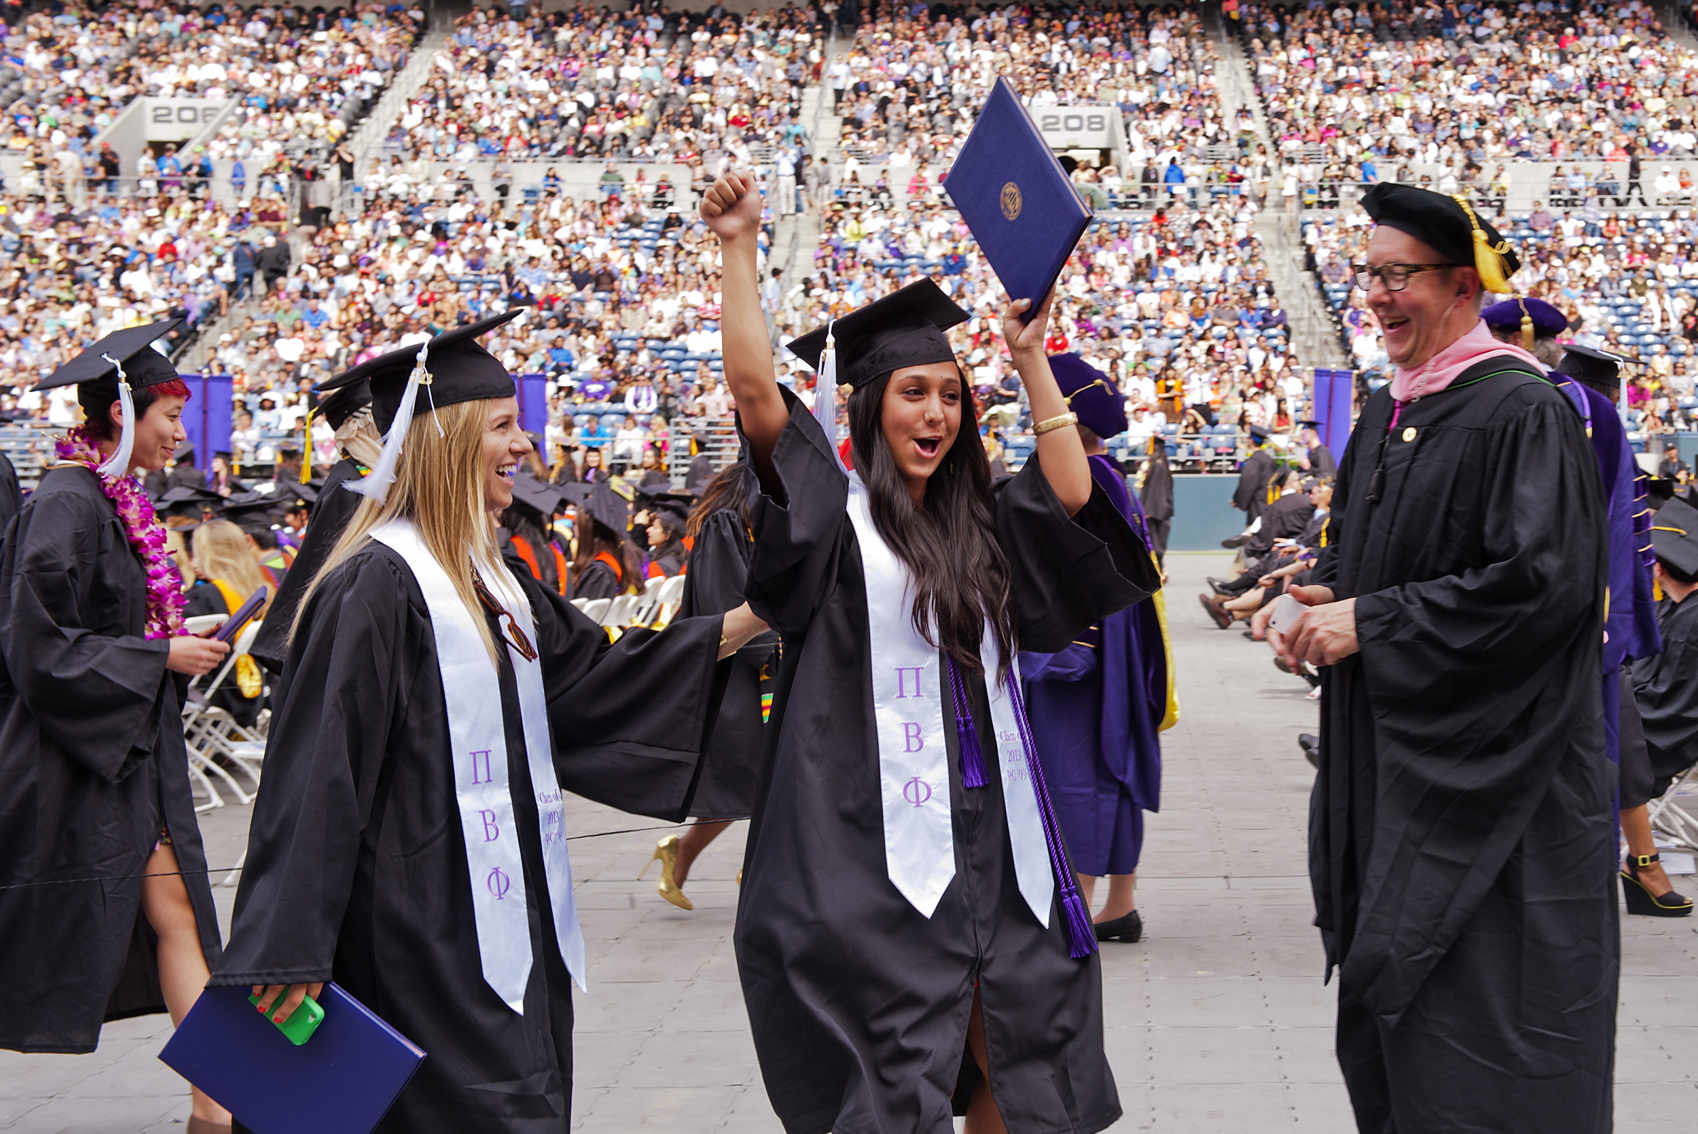 A scene from the 2013 UW commencement ceremony at CenturyLink Field in Seattle.